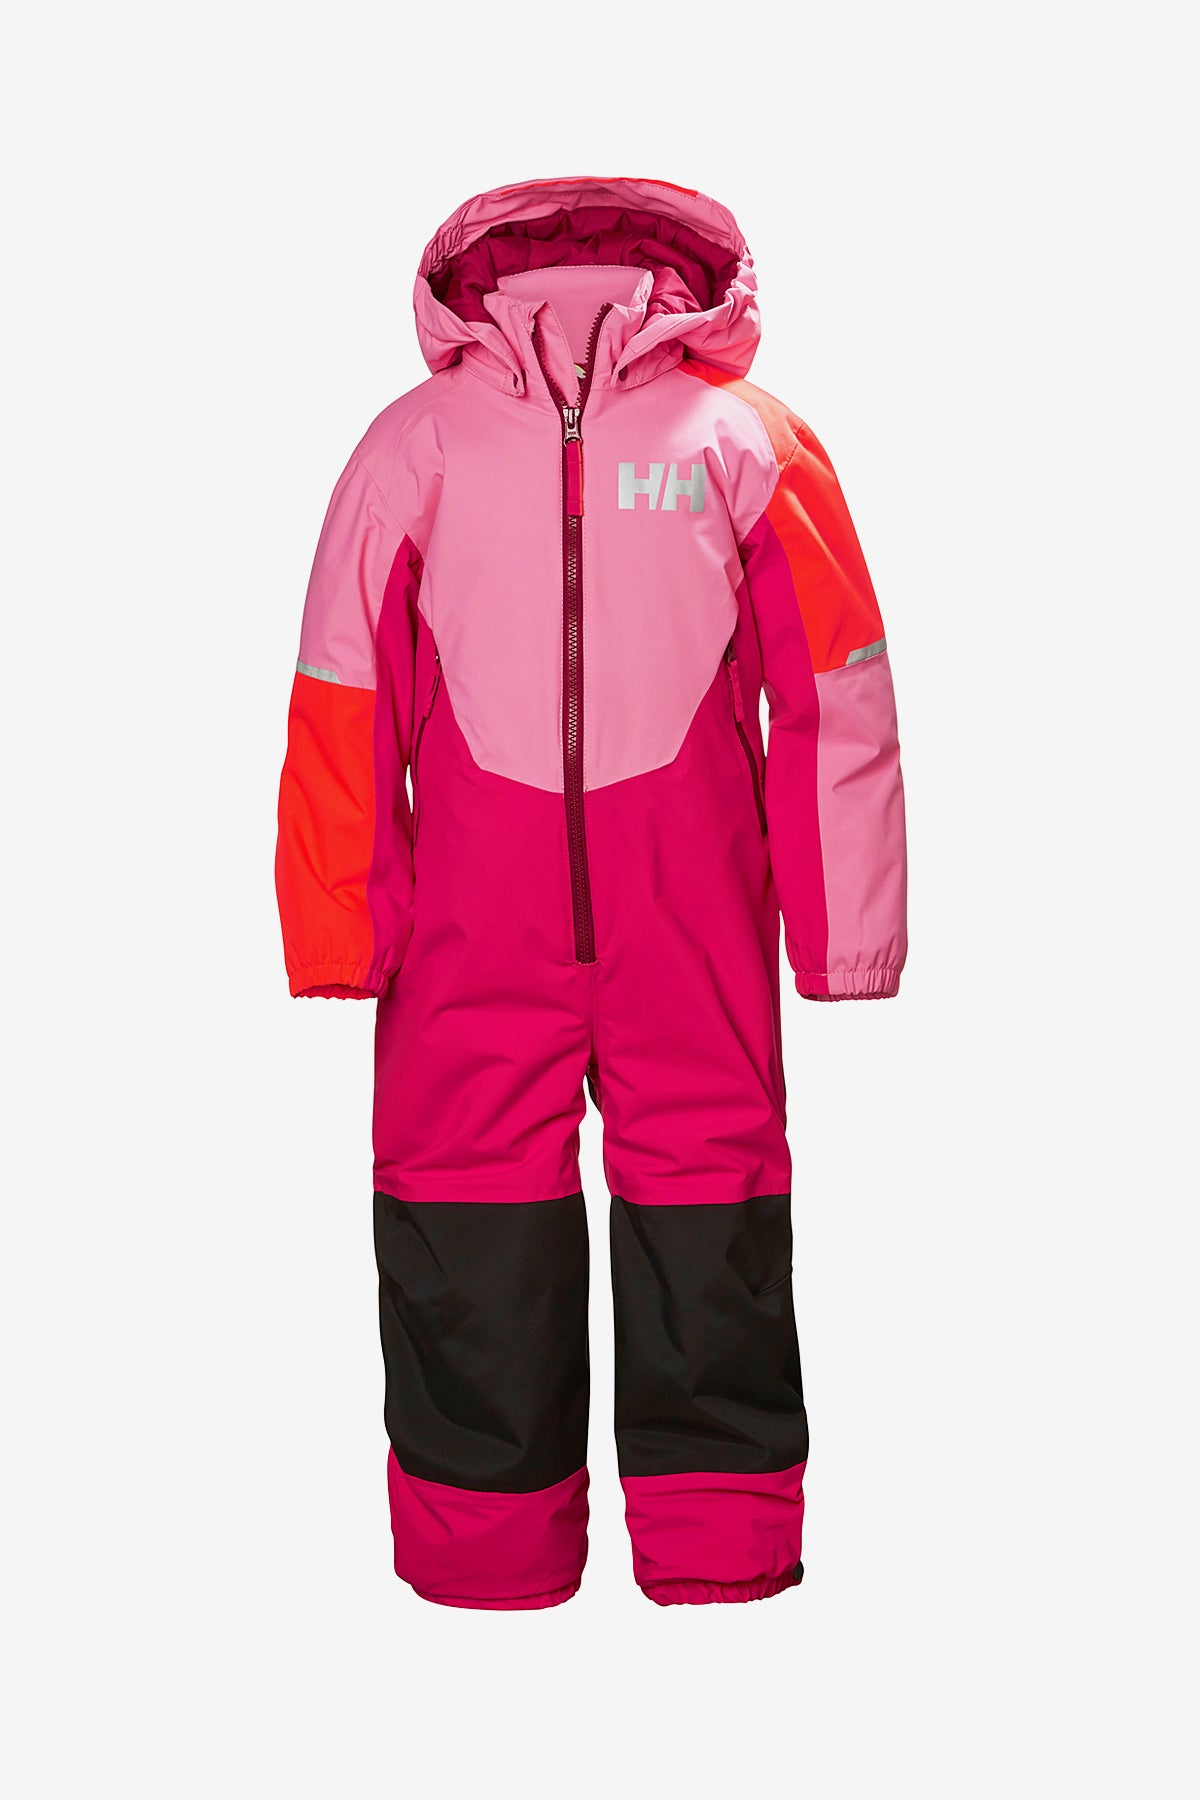 Helly Hansen Rider Insulated Skisuit